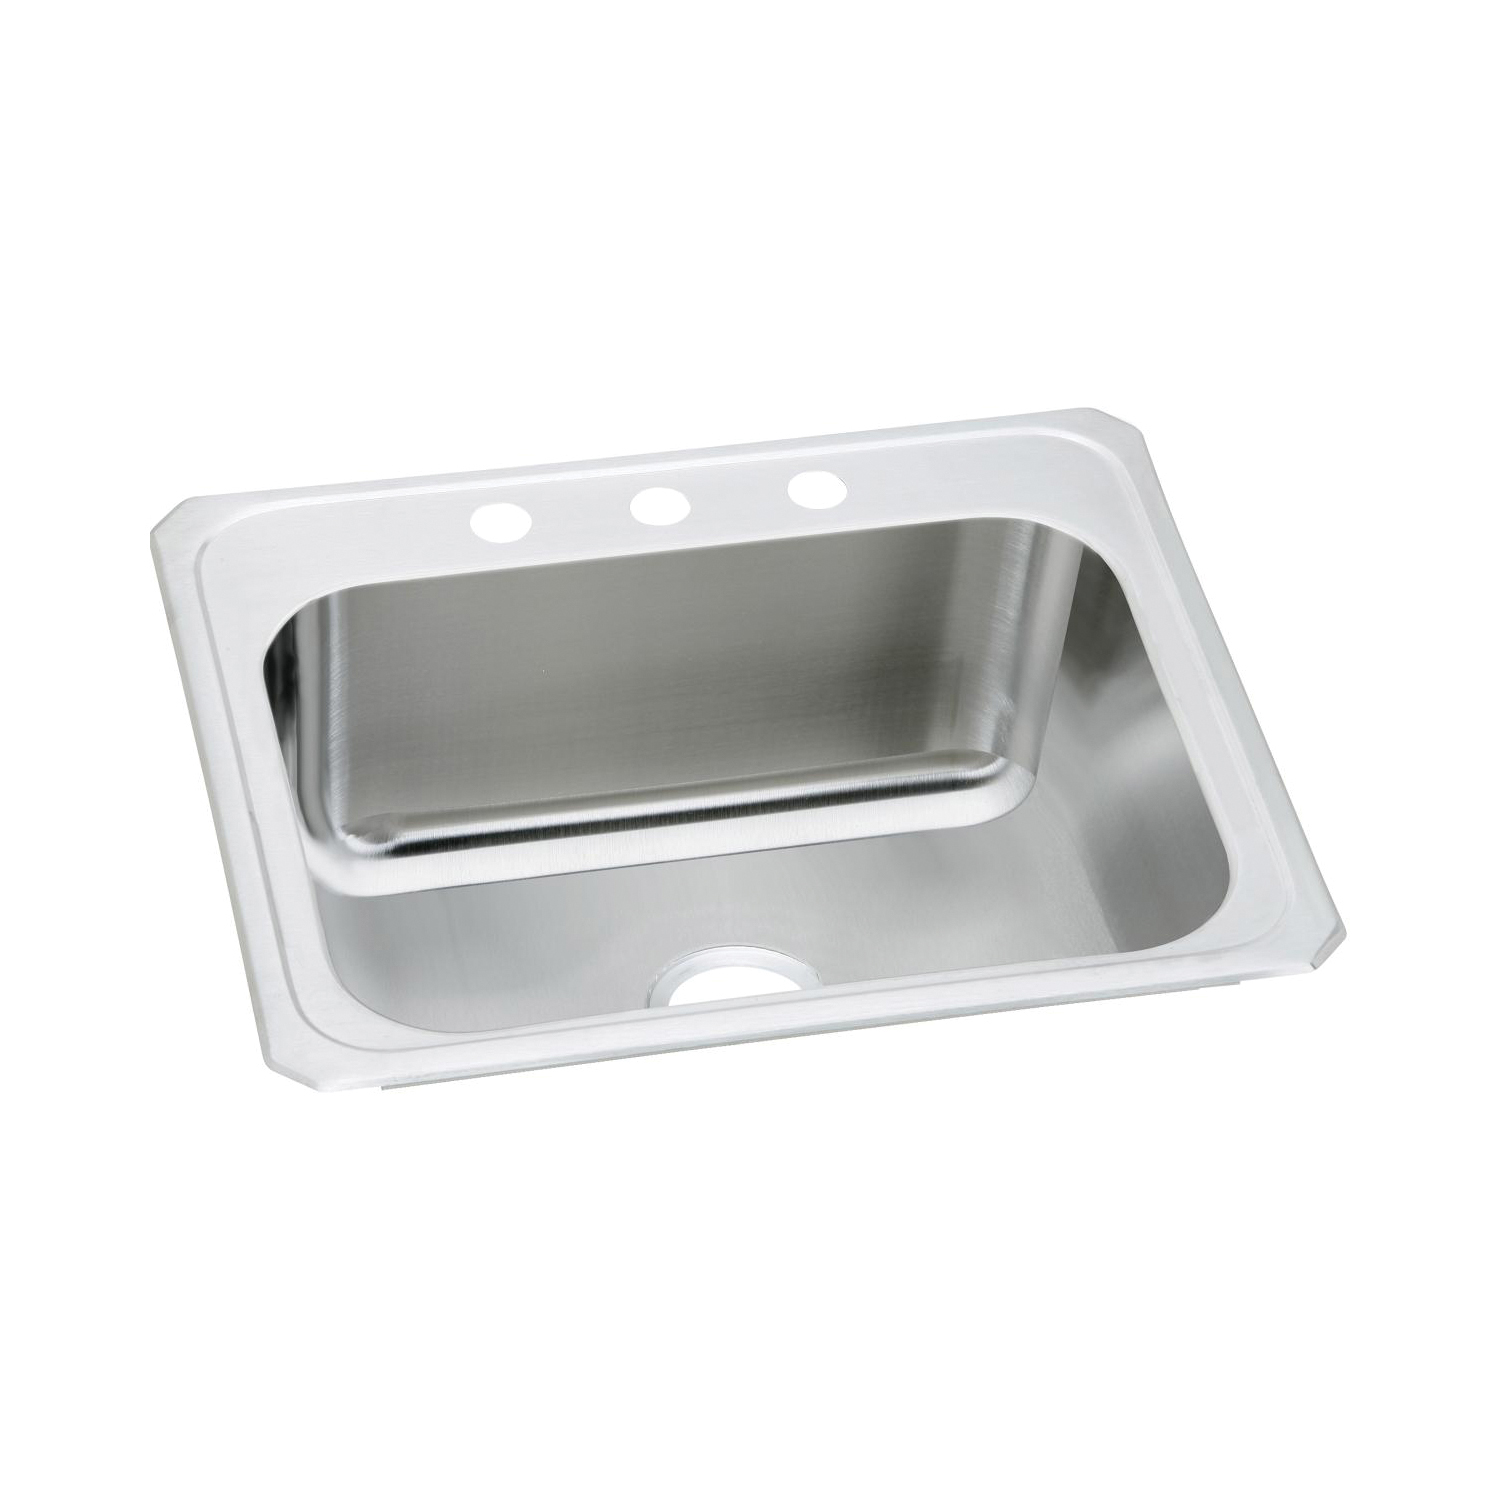 Elkay DCR2522104 Pursuit Laundry Sink, Rectangular, 25 in W x 10-1/4 in D x 22 in H, Top Mount, Stainless Steel, Brushed Satin